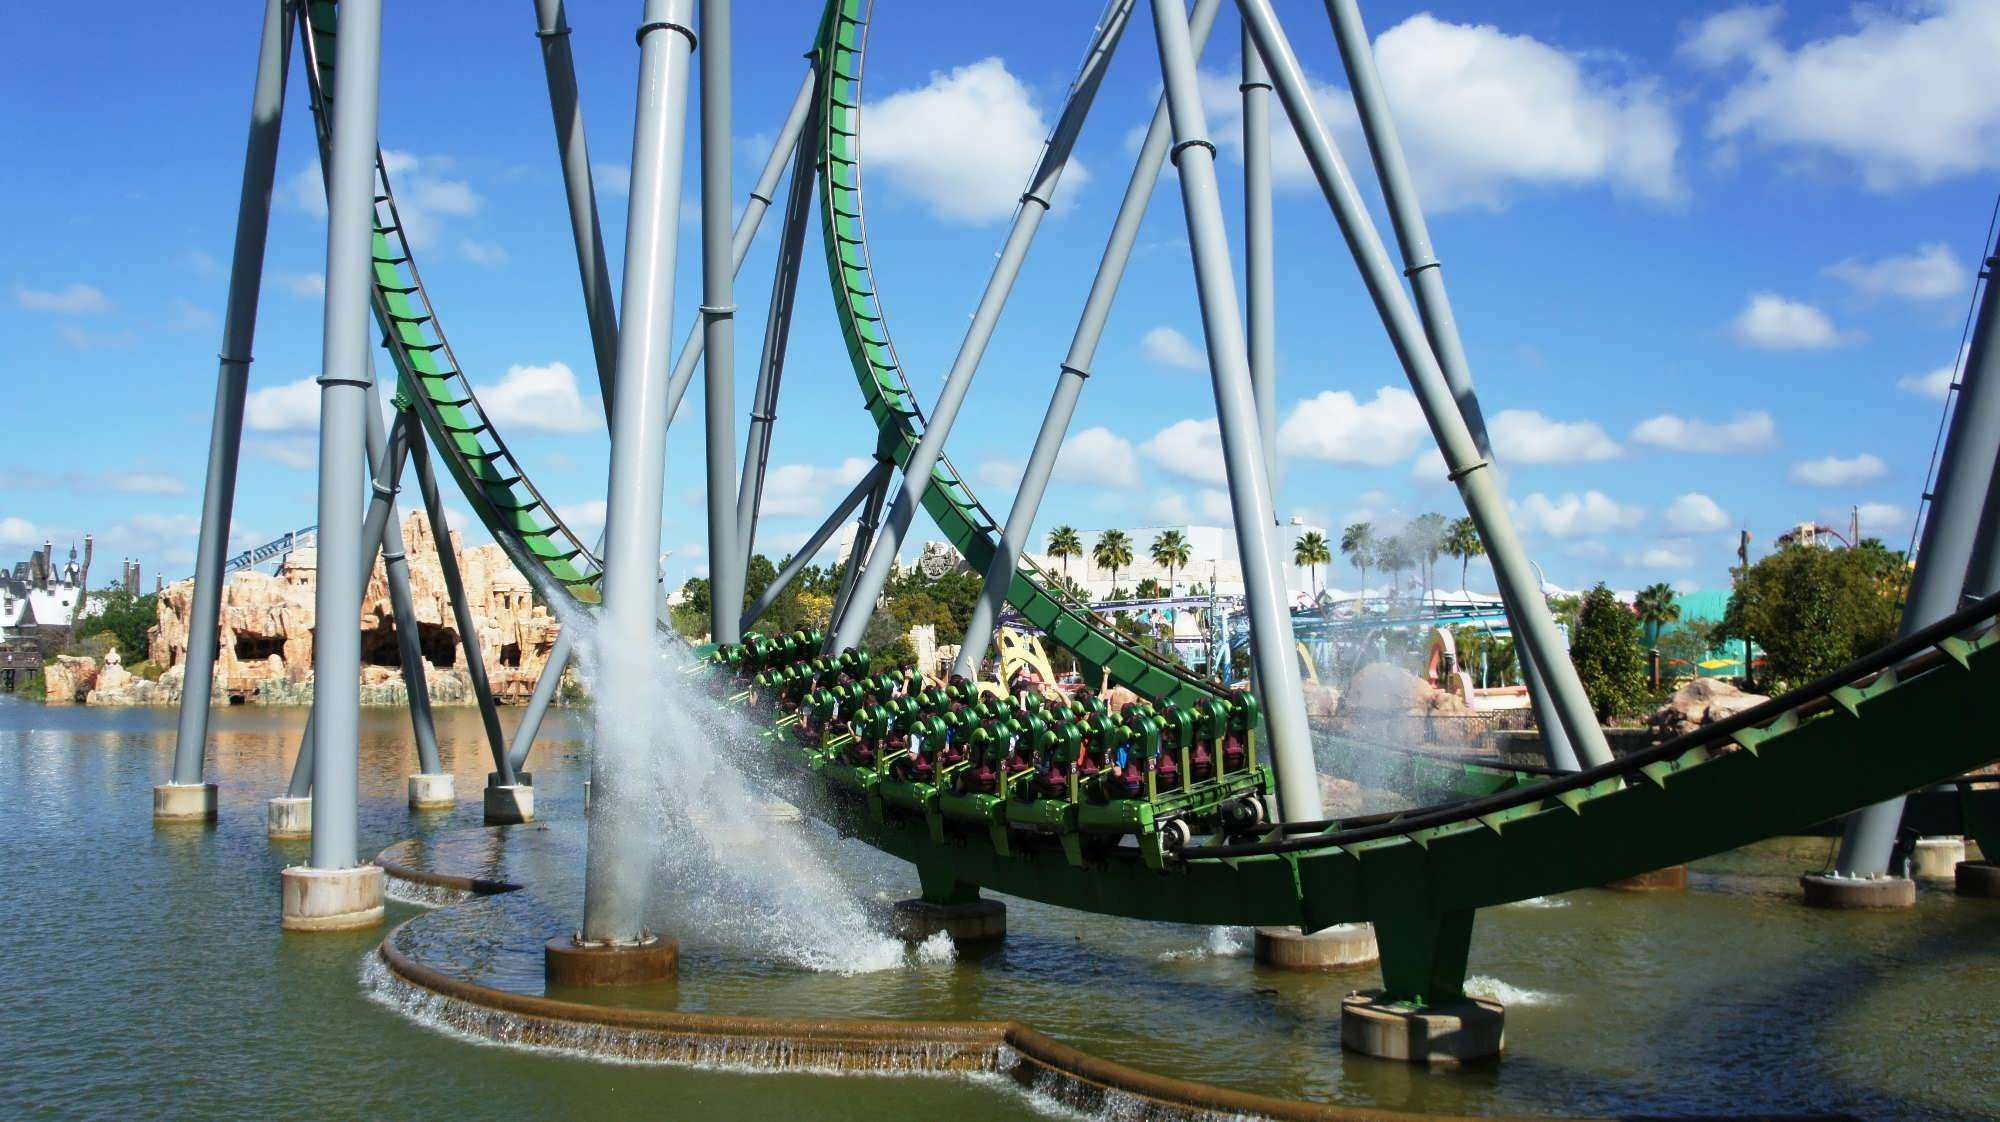 10 steps to enjoy your summer vacation at Universal